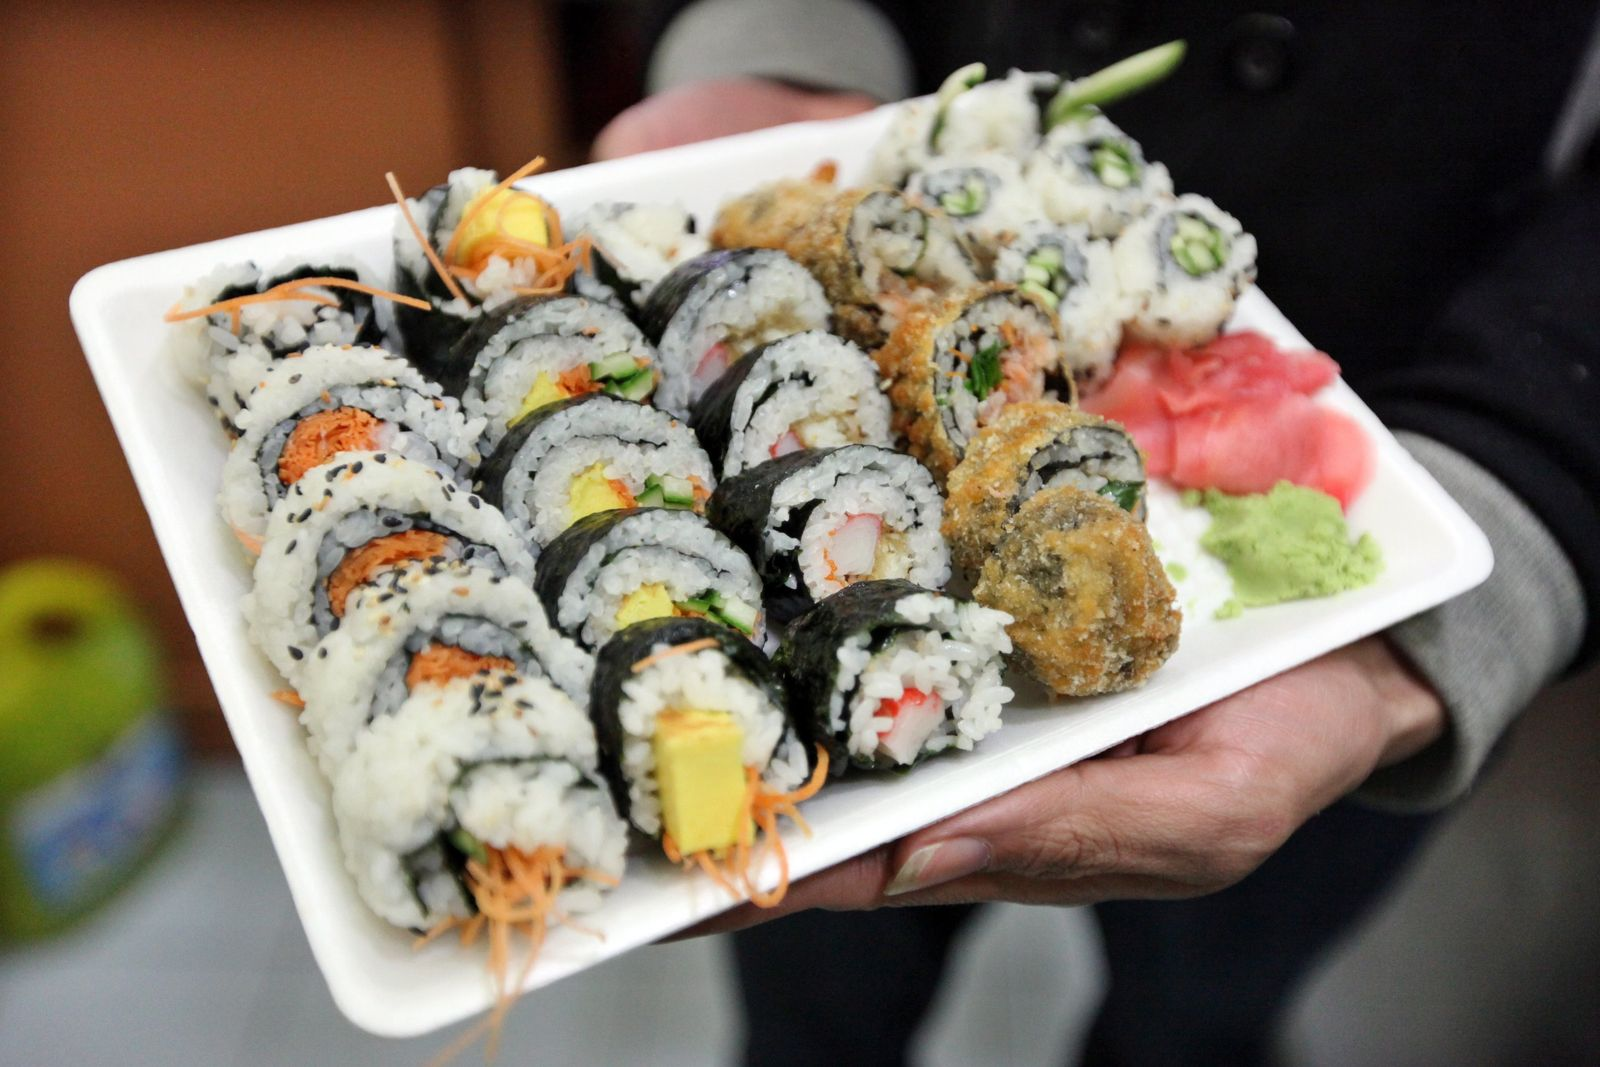 Food imports from Japan subjected to screening